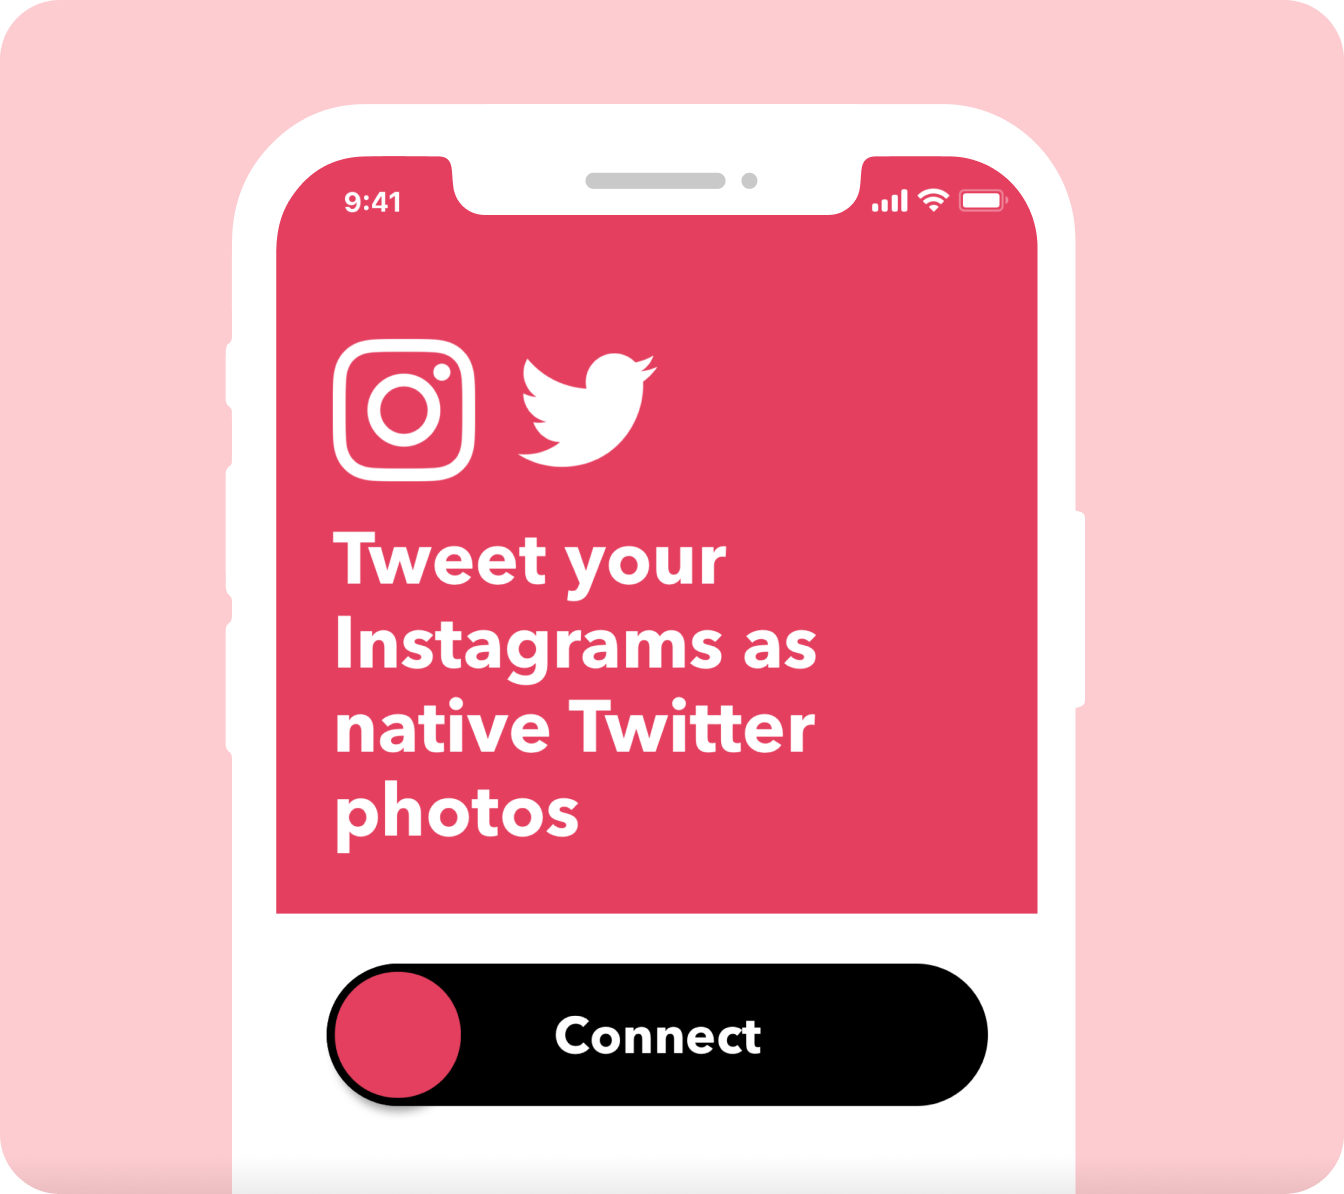 iPhone: Tweet your Instagrams as native Twitter photos